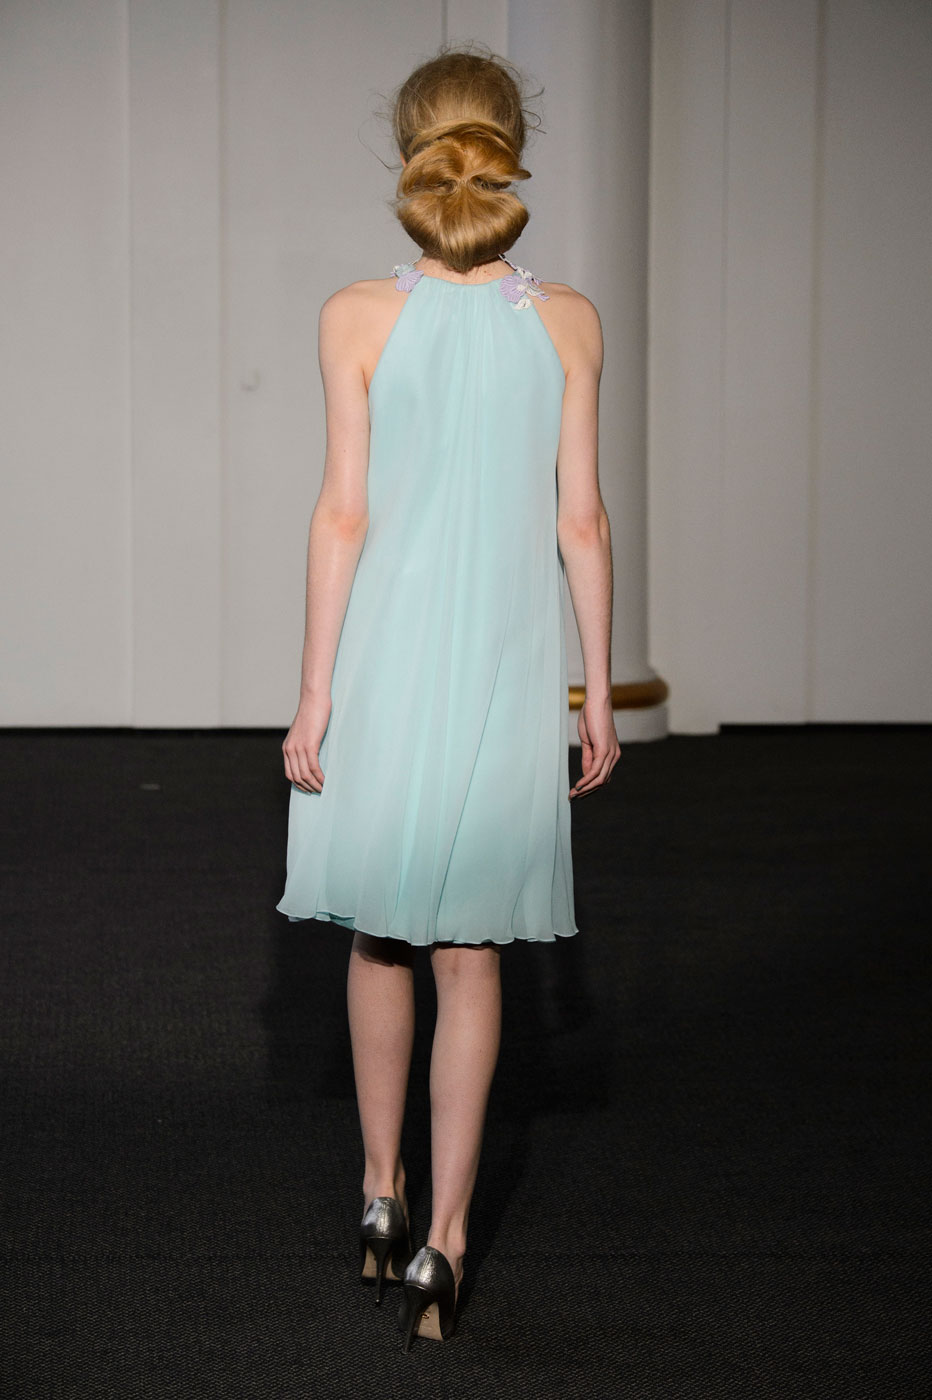 Busardi-fashion-runway-show-haute-couture-paris-spring-2015-the-impression-12